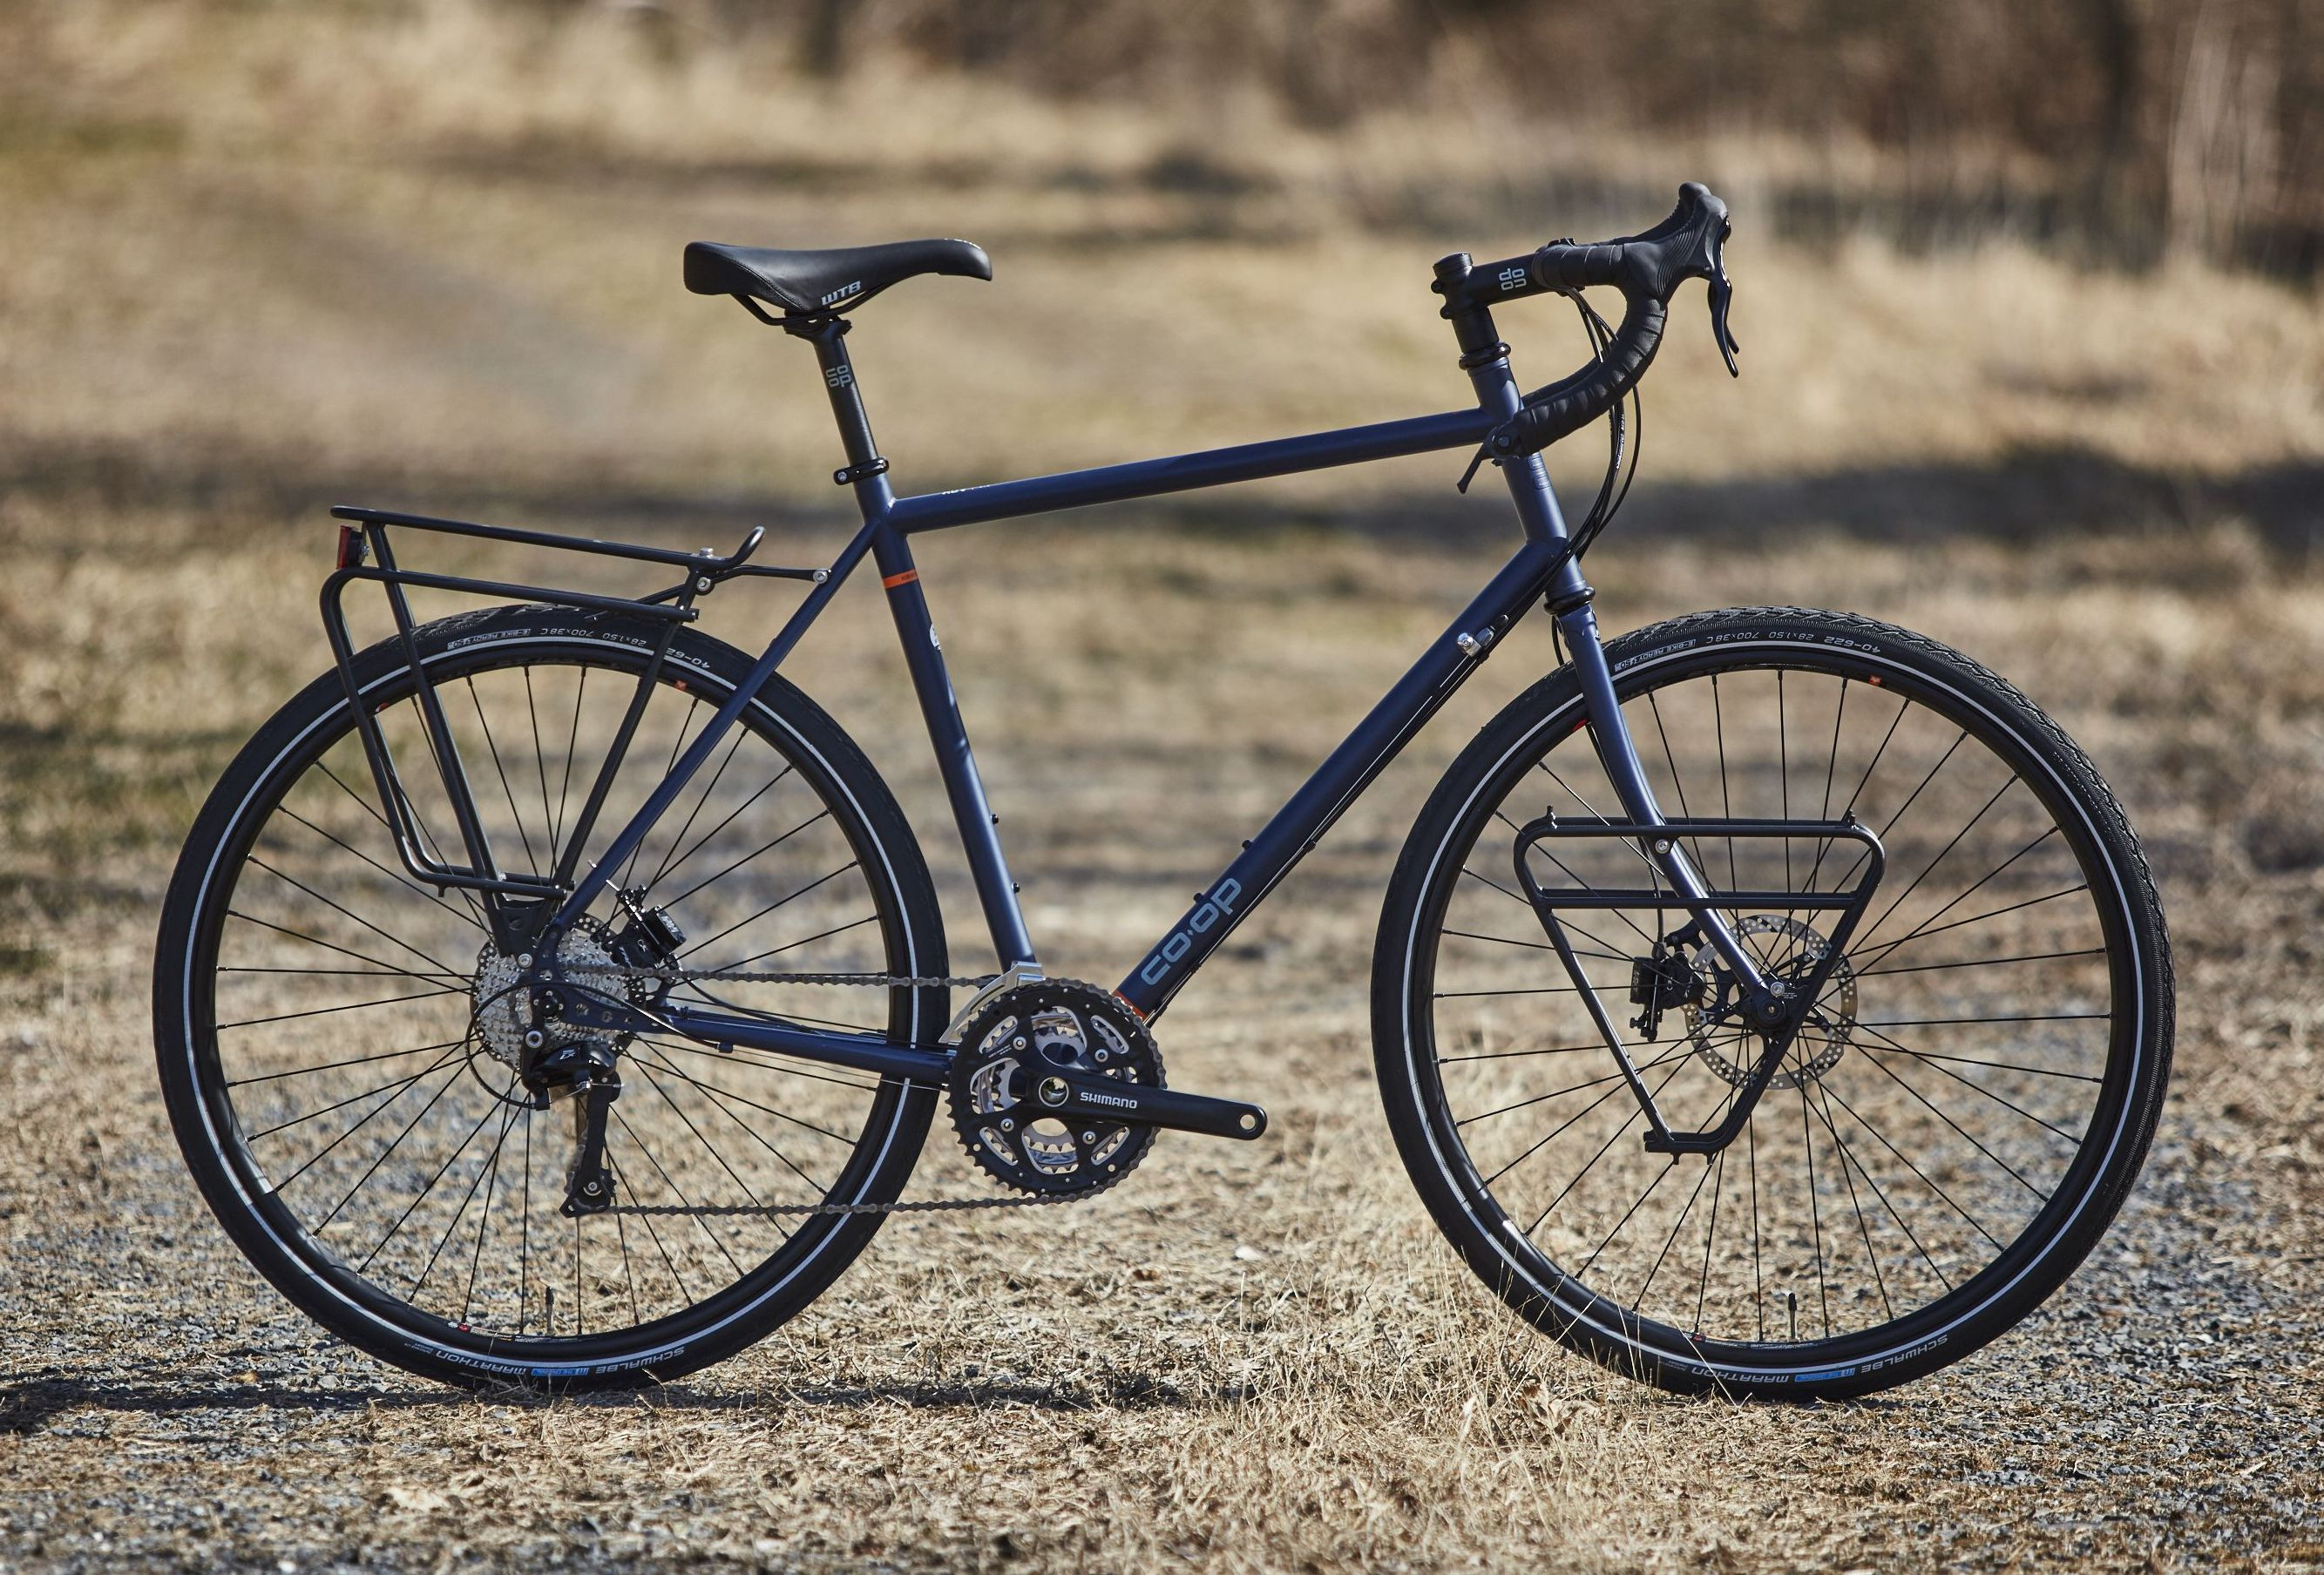 The Co-op Cycles ADV 1.1 Is a Touring Bike for Epic Adventures